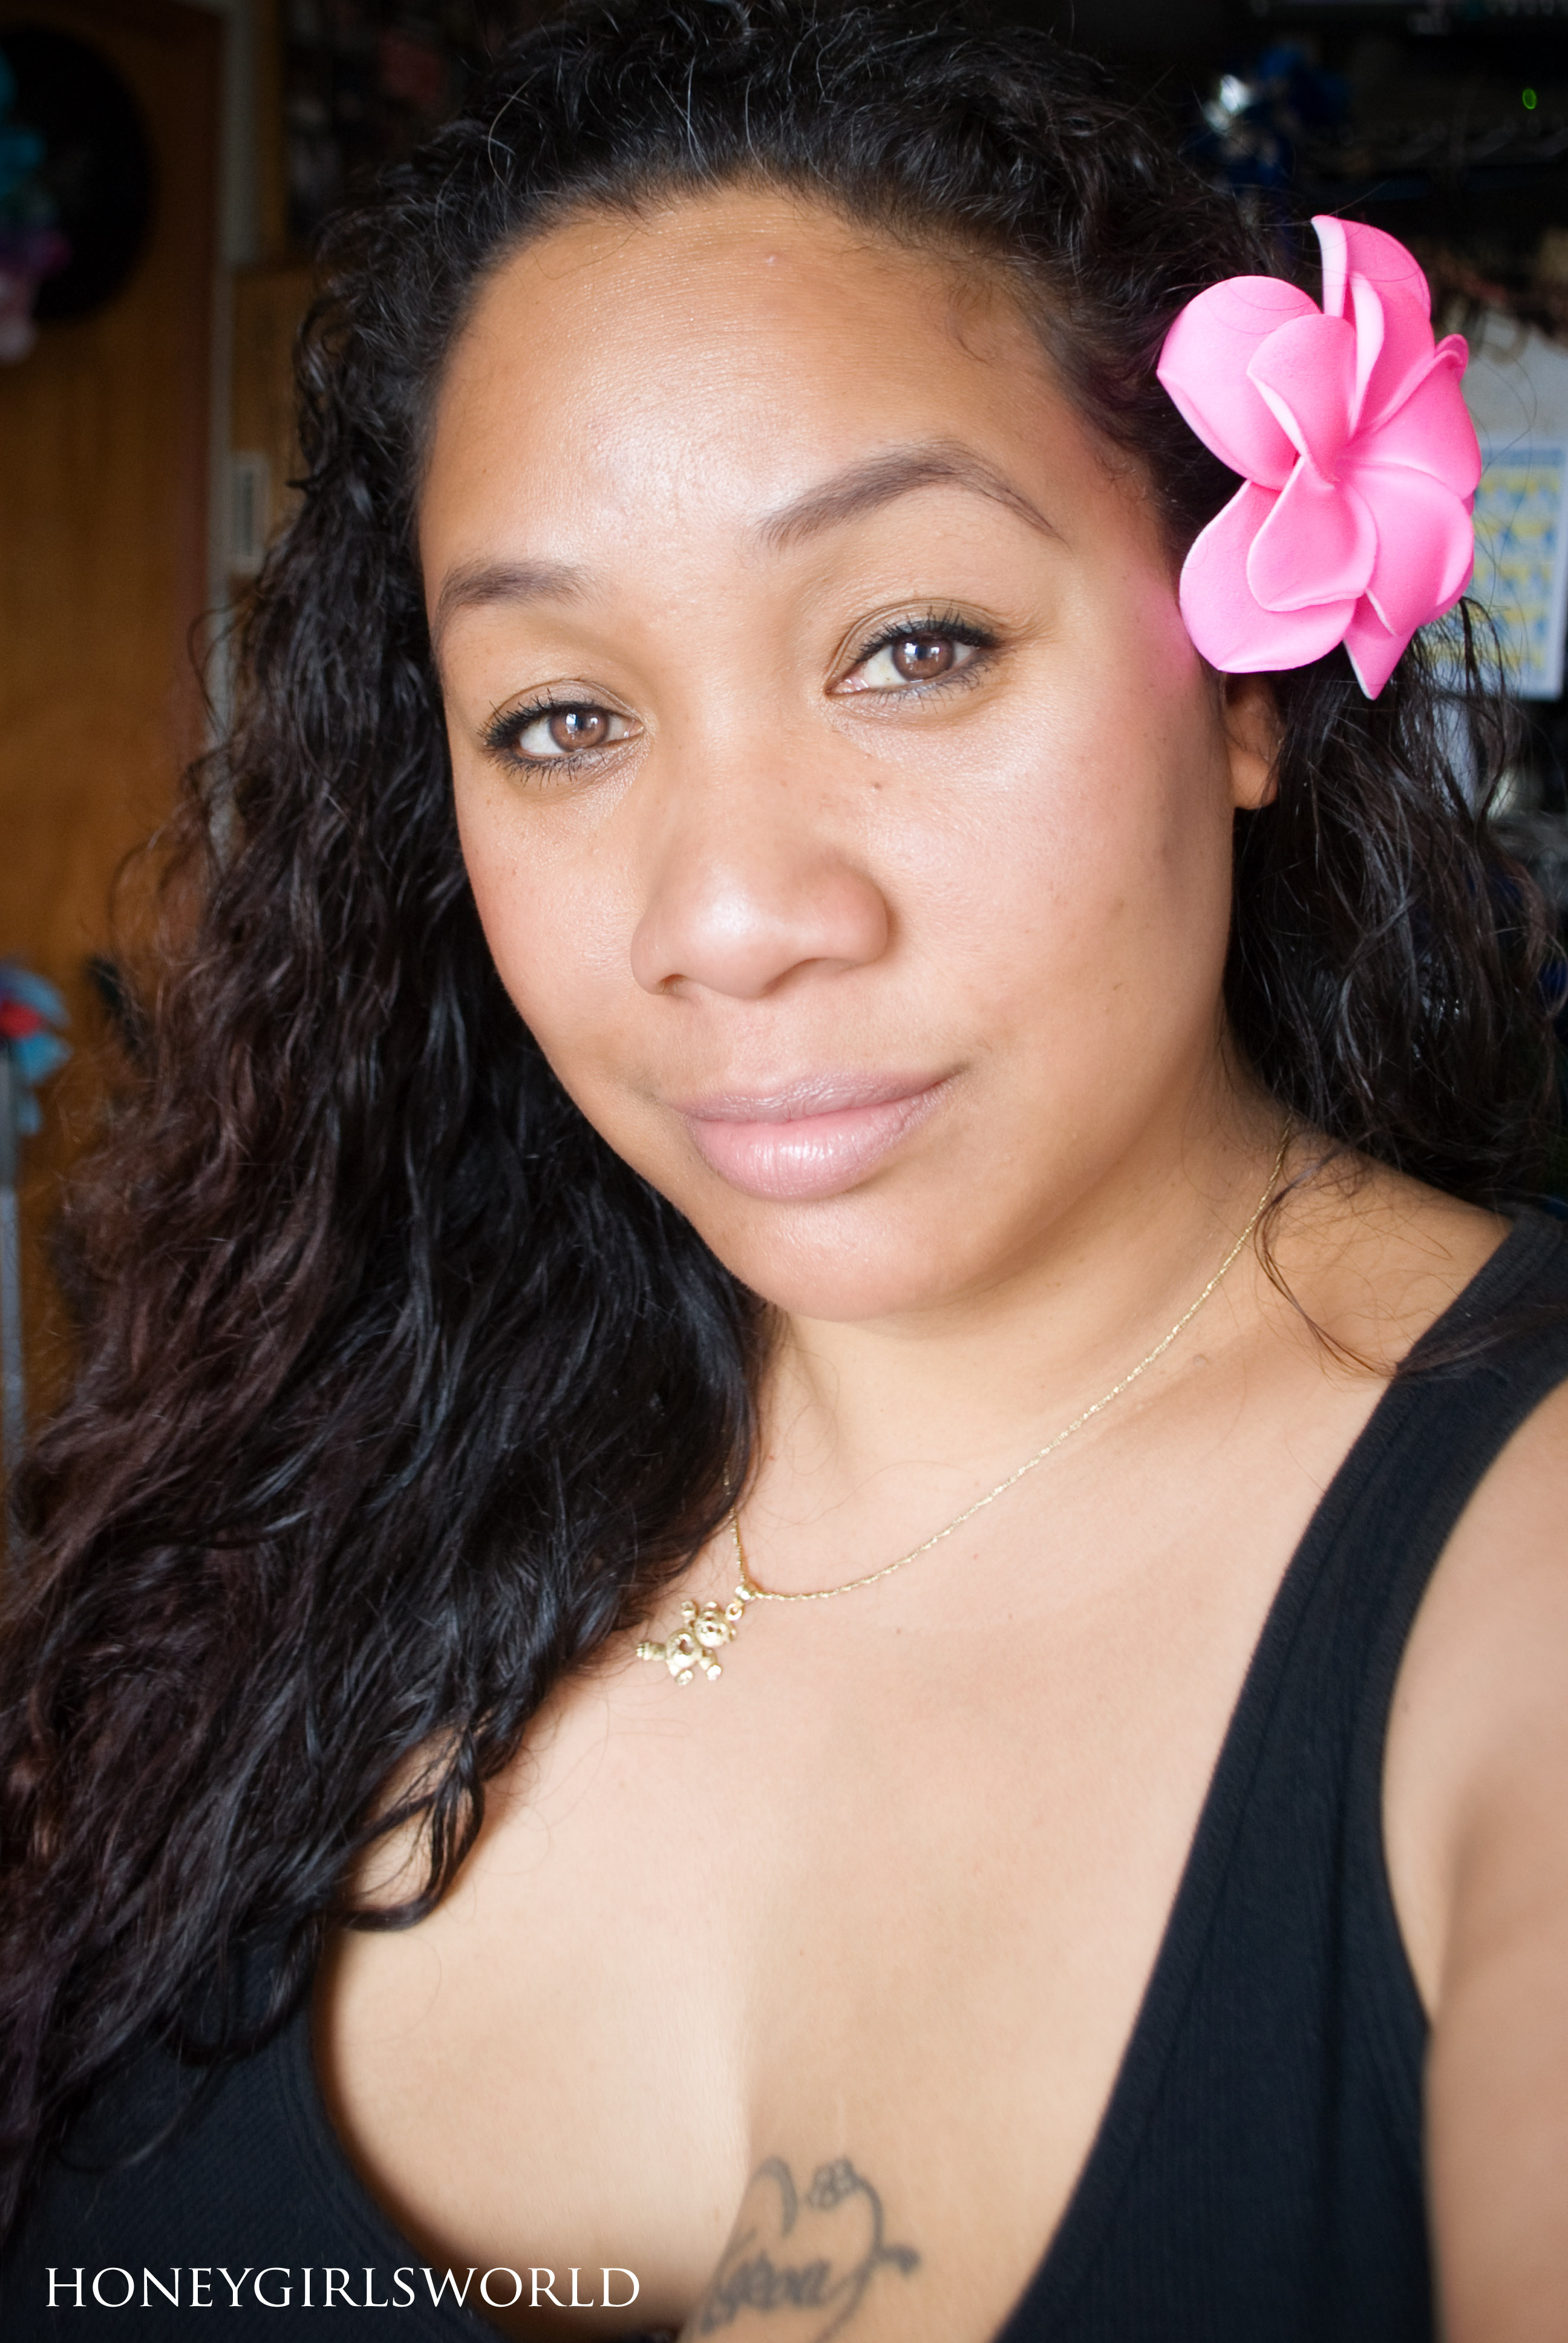 All About The Summer Glow, No Makeup - Makeup Look http://honeygirlsworld.com